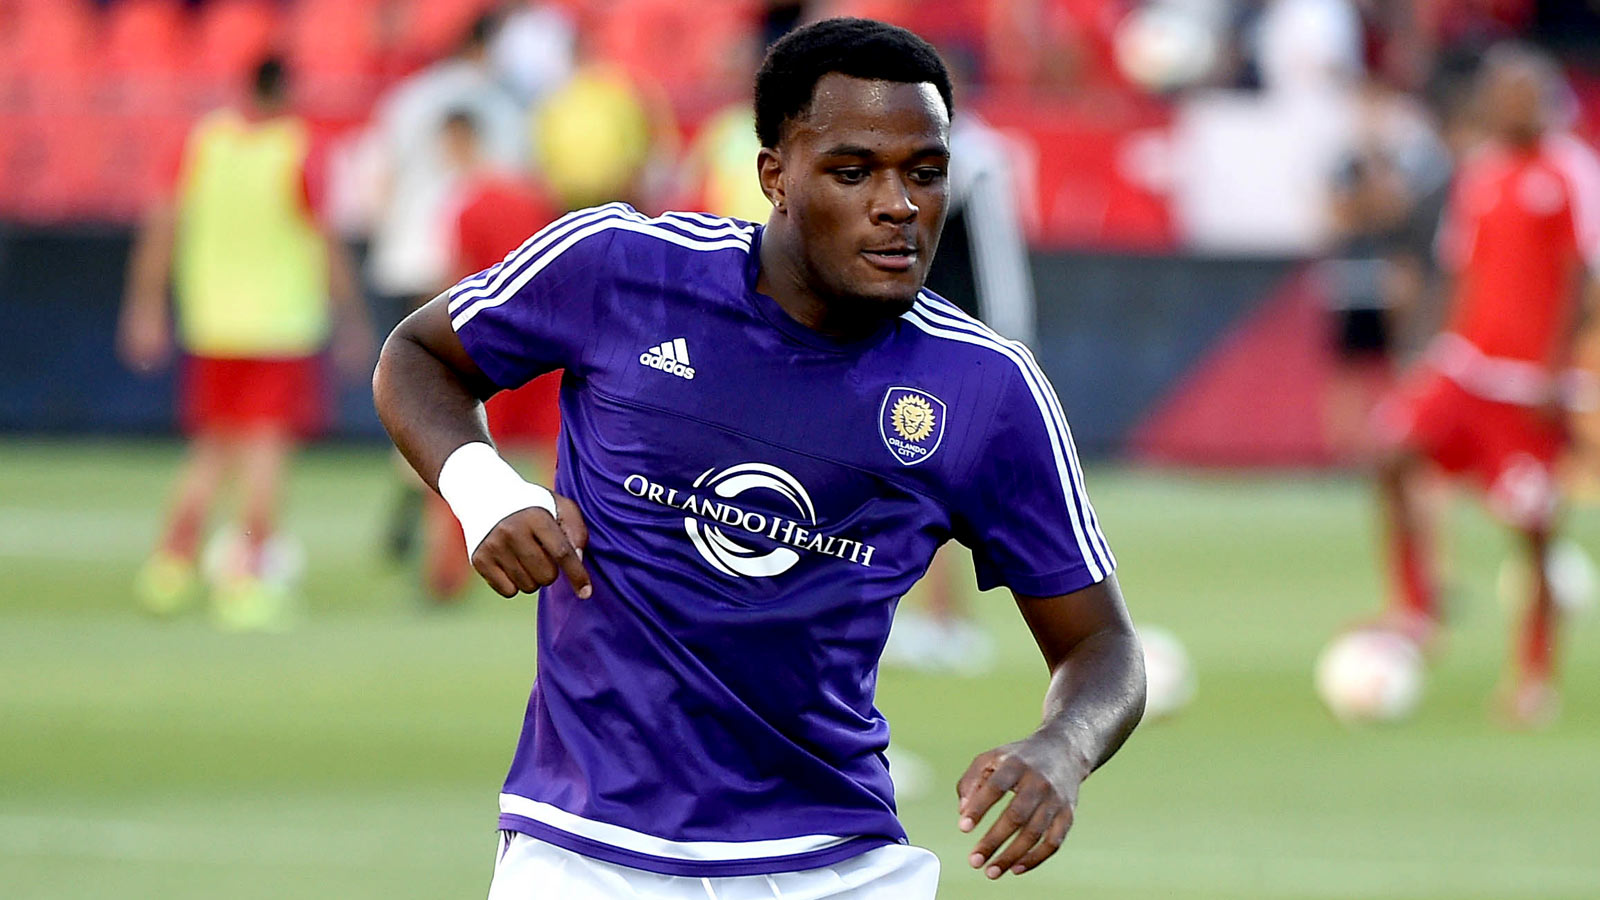 Orlando City's Cyle Larin voted MLS Rookie of the Year